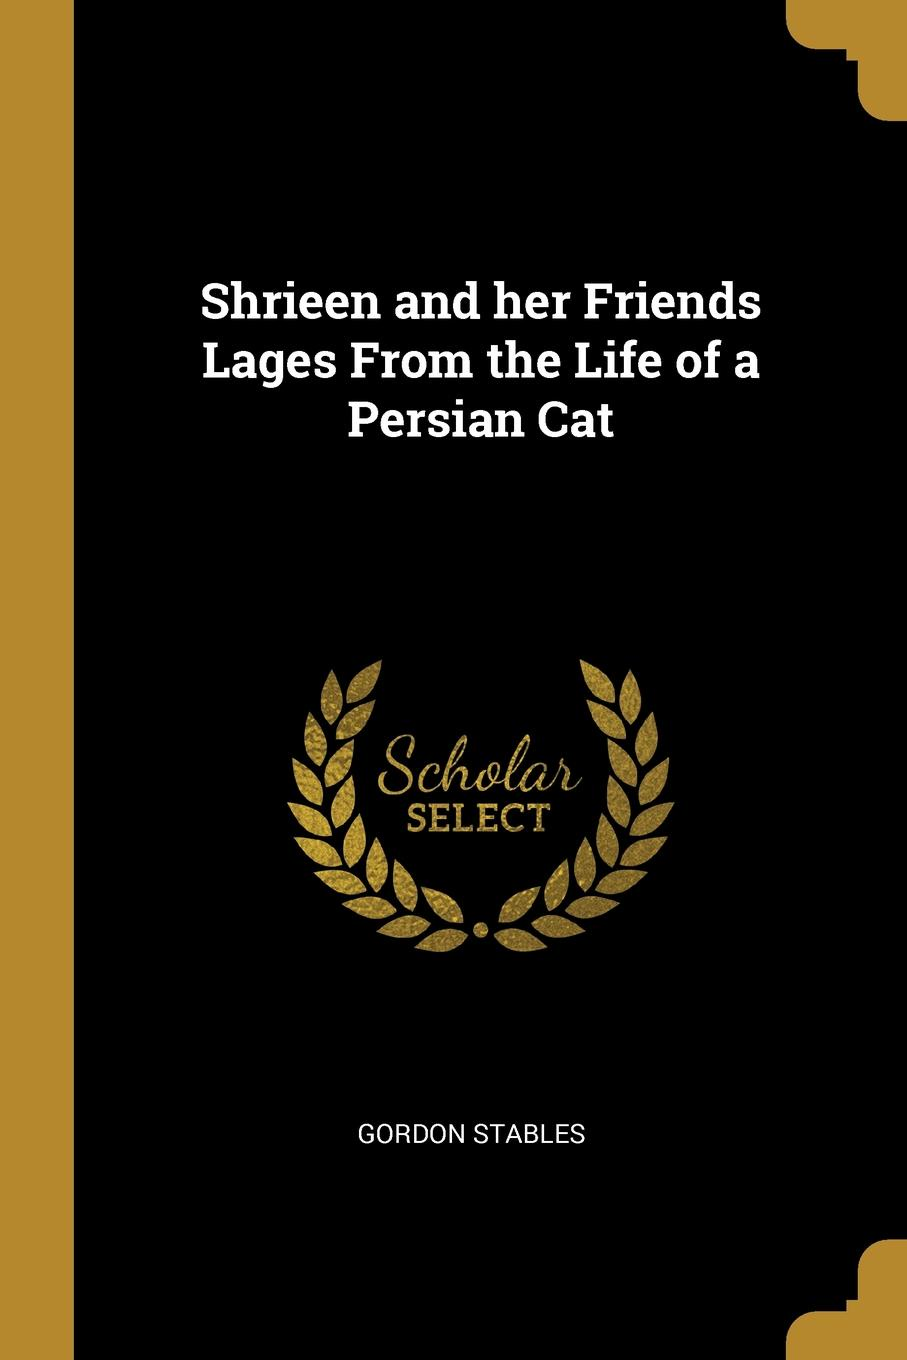 Gordon Stables Shrieen and her Friends Lages From the Life of a Persian Cat stables gordon shireen and her friends pages from the life of a persian cat